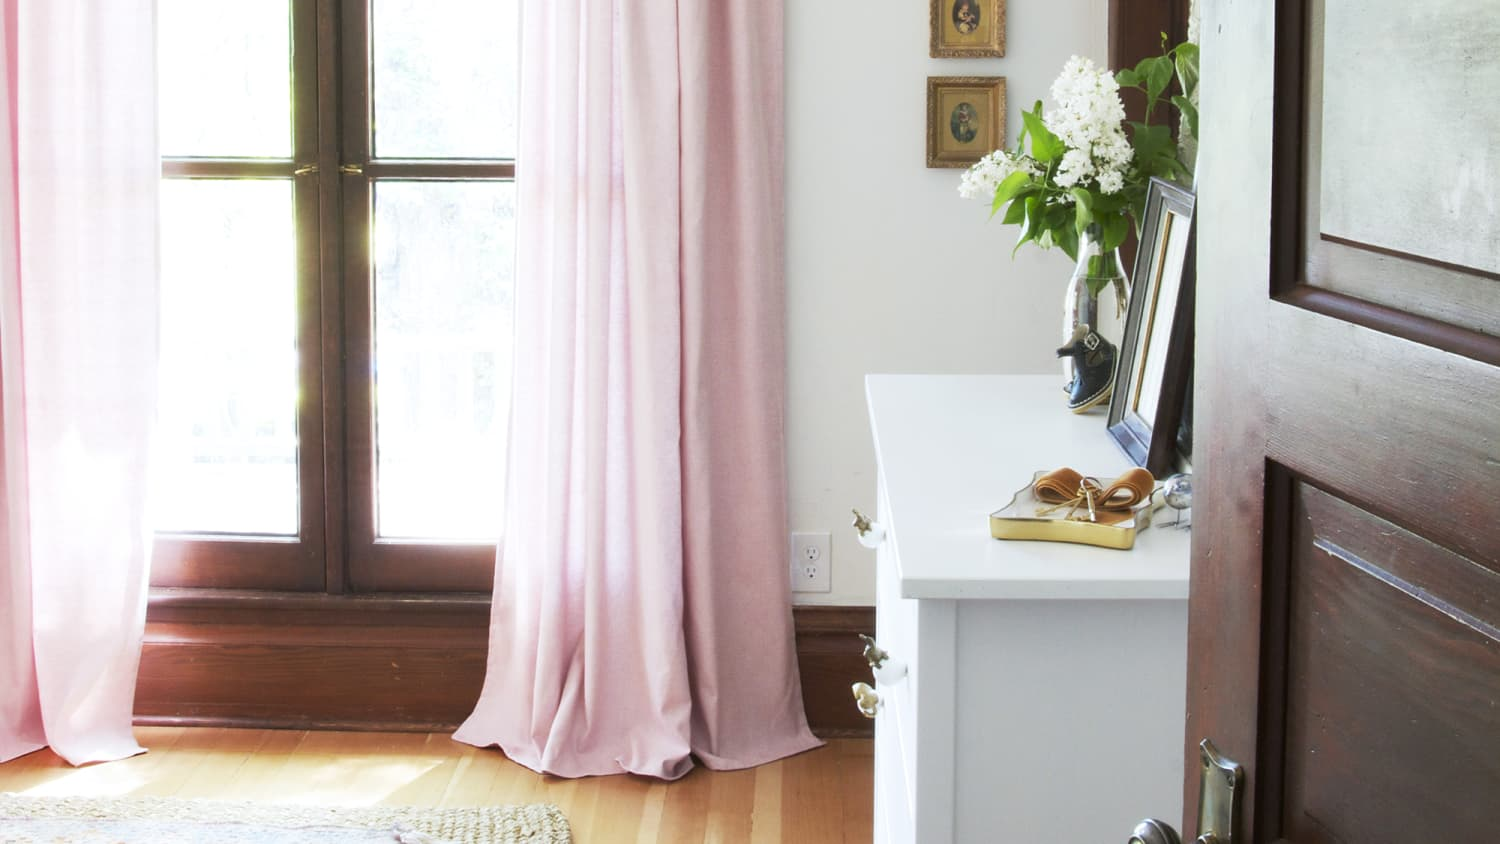 18 Diy Curtain Ideas Easy Ways To Make Curtains Apartment Therapy